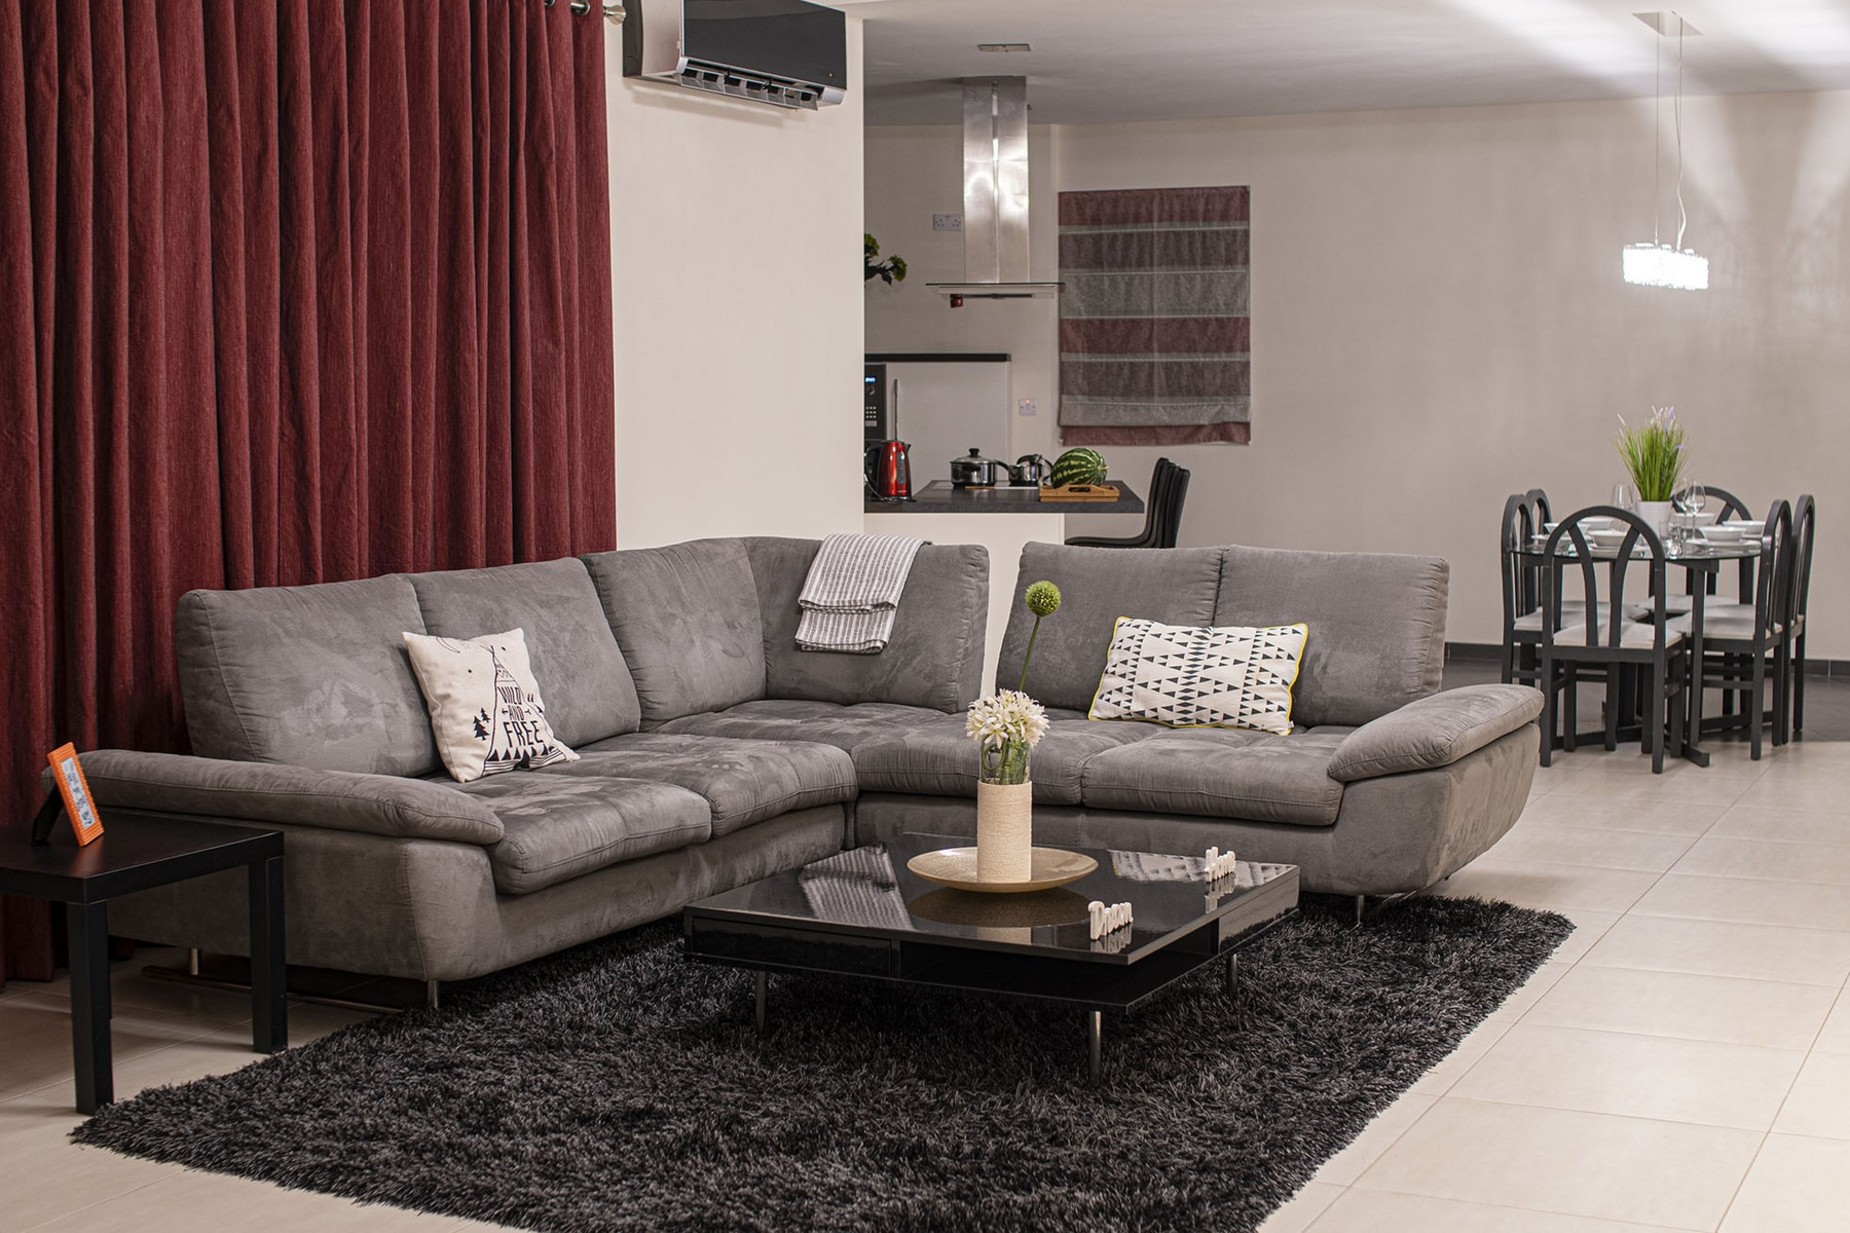 3 bed Apartment For Rent in Attard, Attard - thumb 10